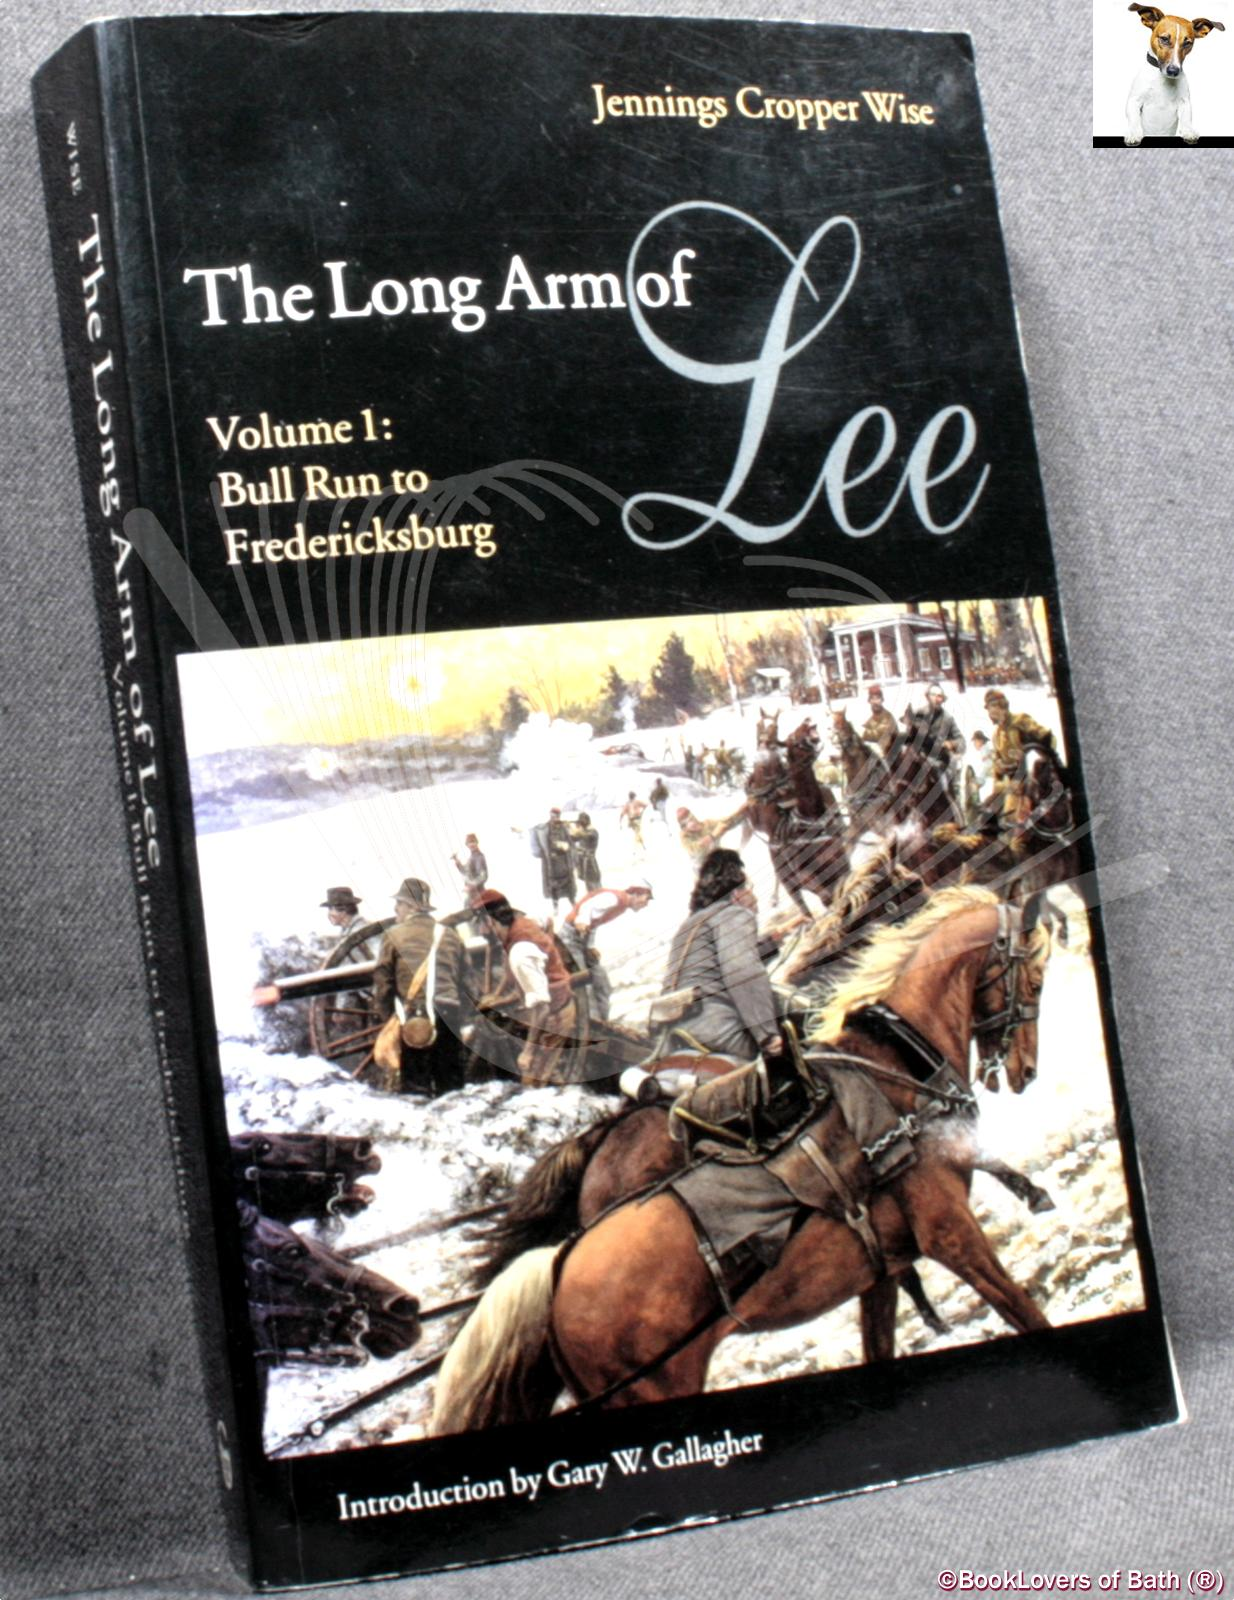 The Long Arm of Lee, Or, the History of the Artillery of the Army of Northern Virginia Volume 1: Bull Run to Fredericksburg - Jennings Cropper Wise